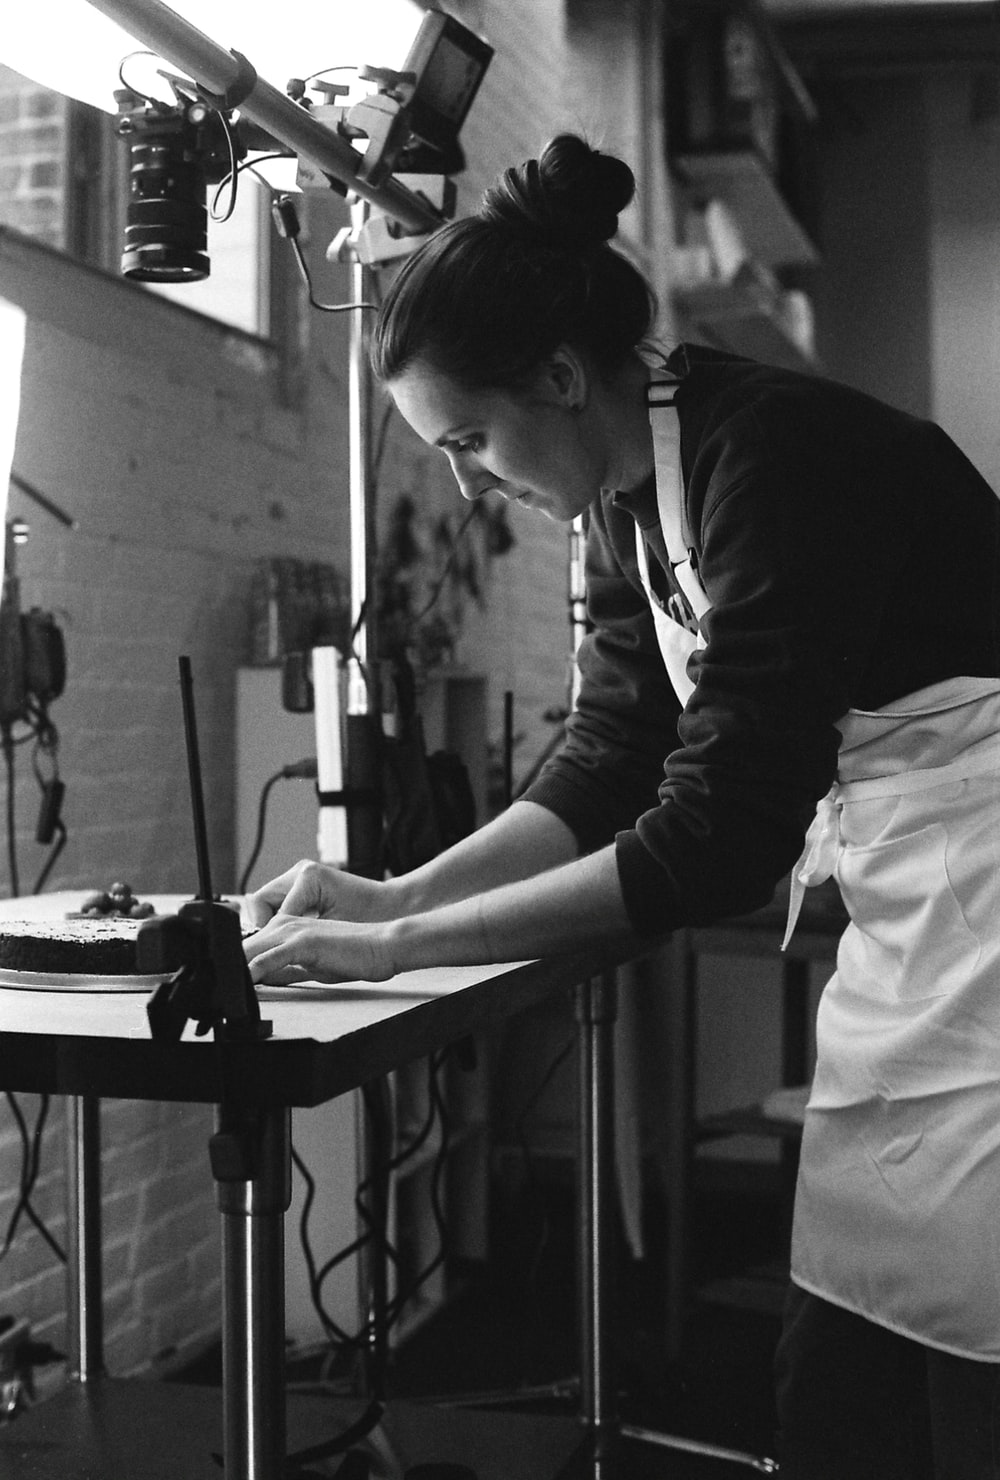 grayscale photography of woman wearing apron